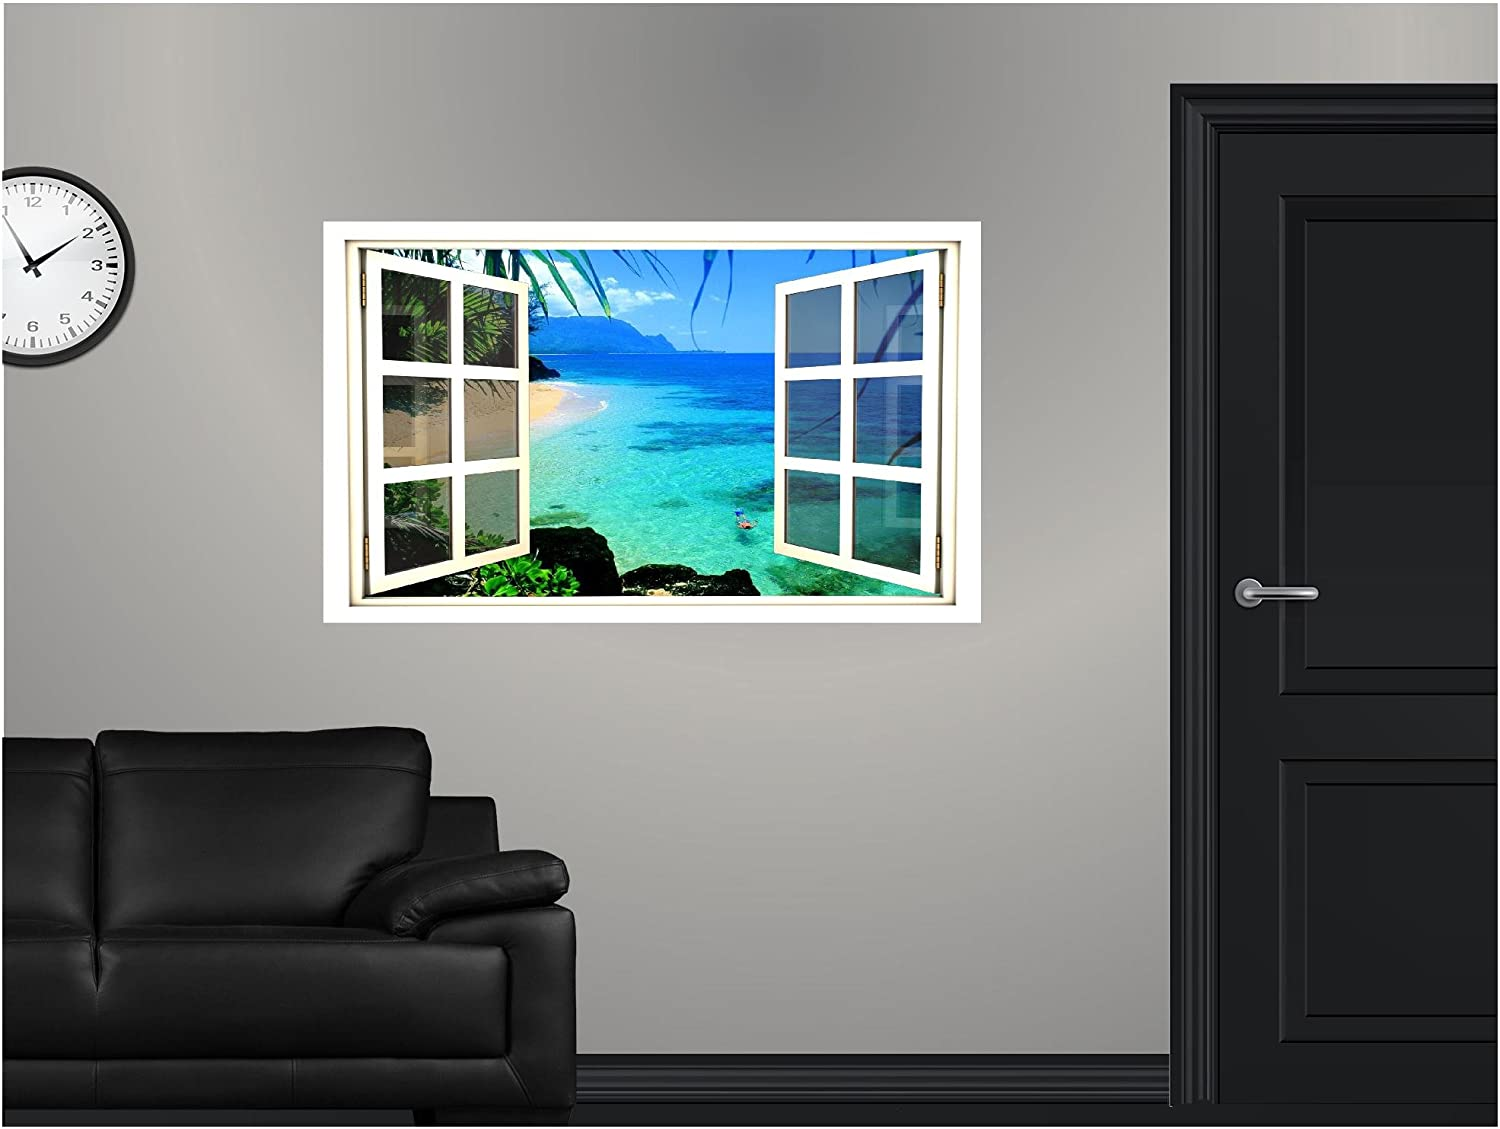 Amazoncom Window Scape HUGE Instant View Hawaii Coast - Window decals for home australia